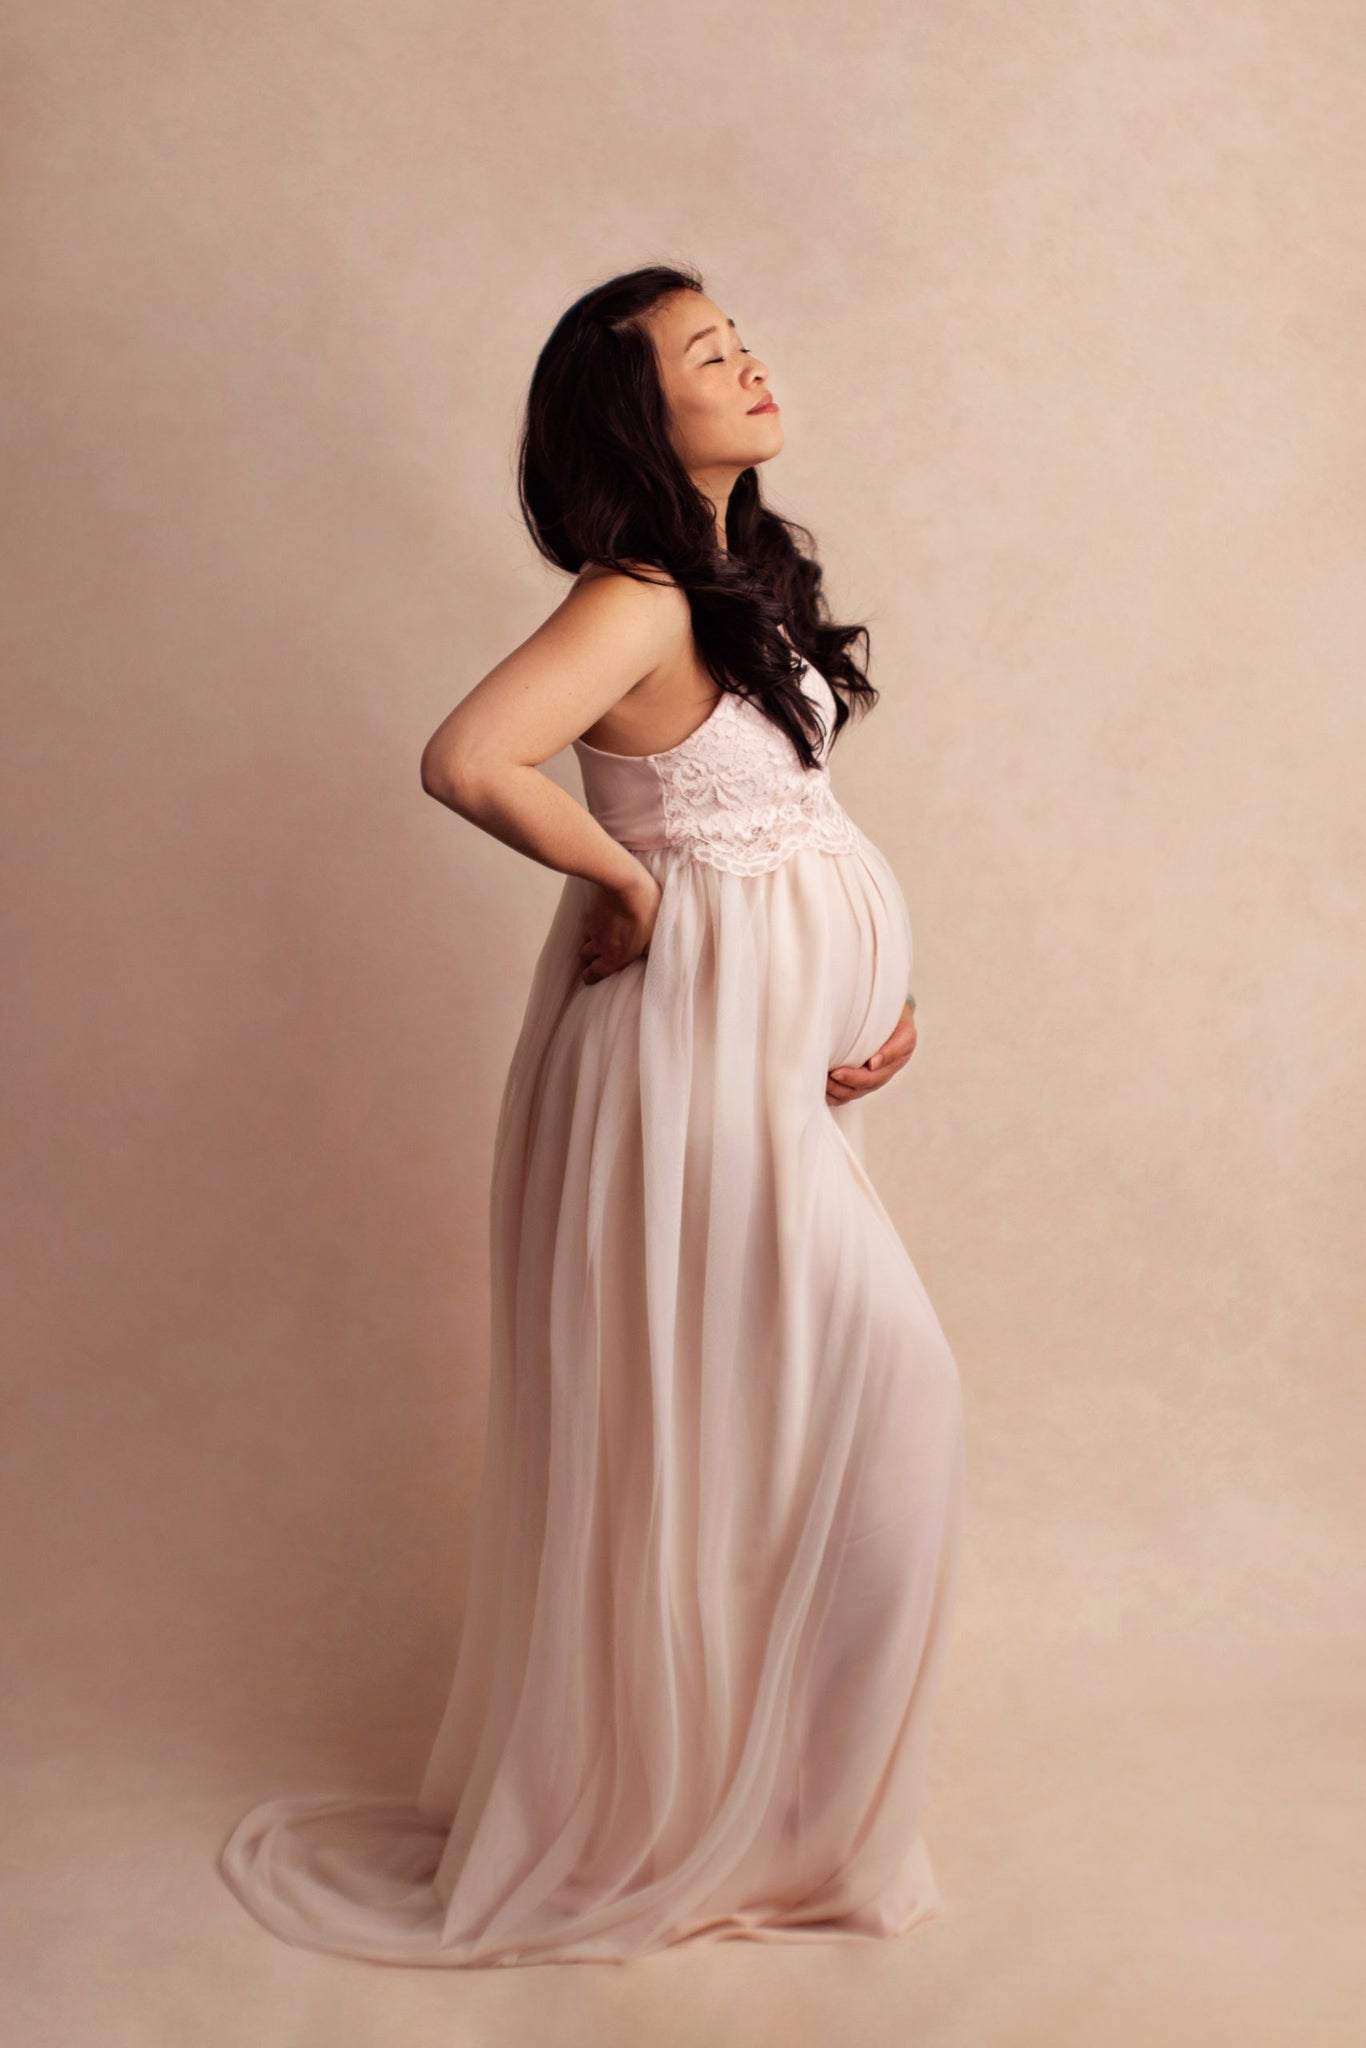 Jo Kidd Lace Maternity Top & Tulle Skirt